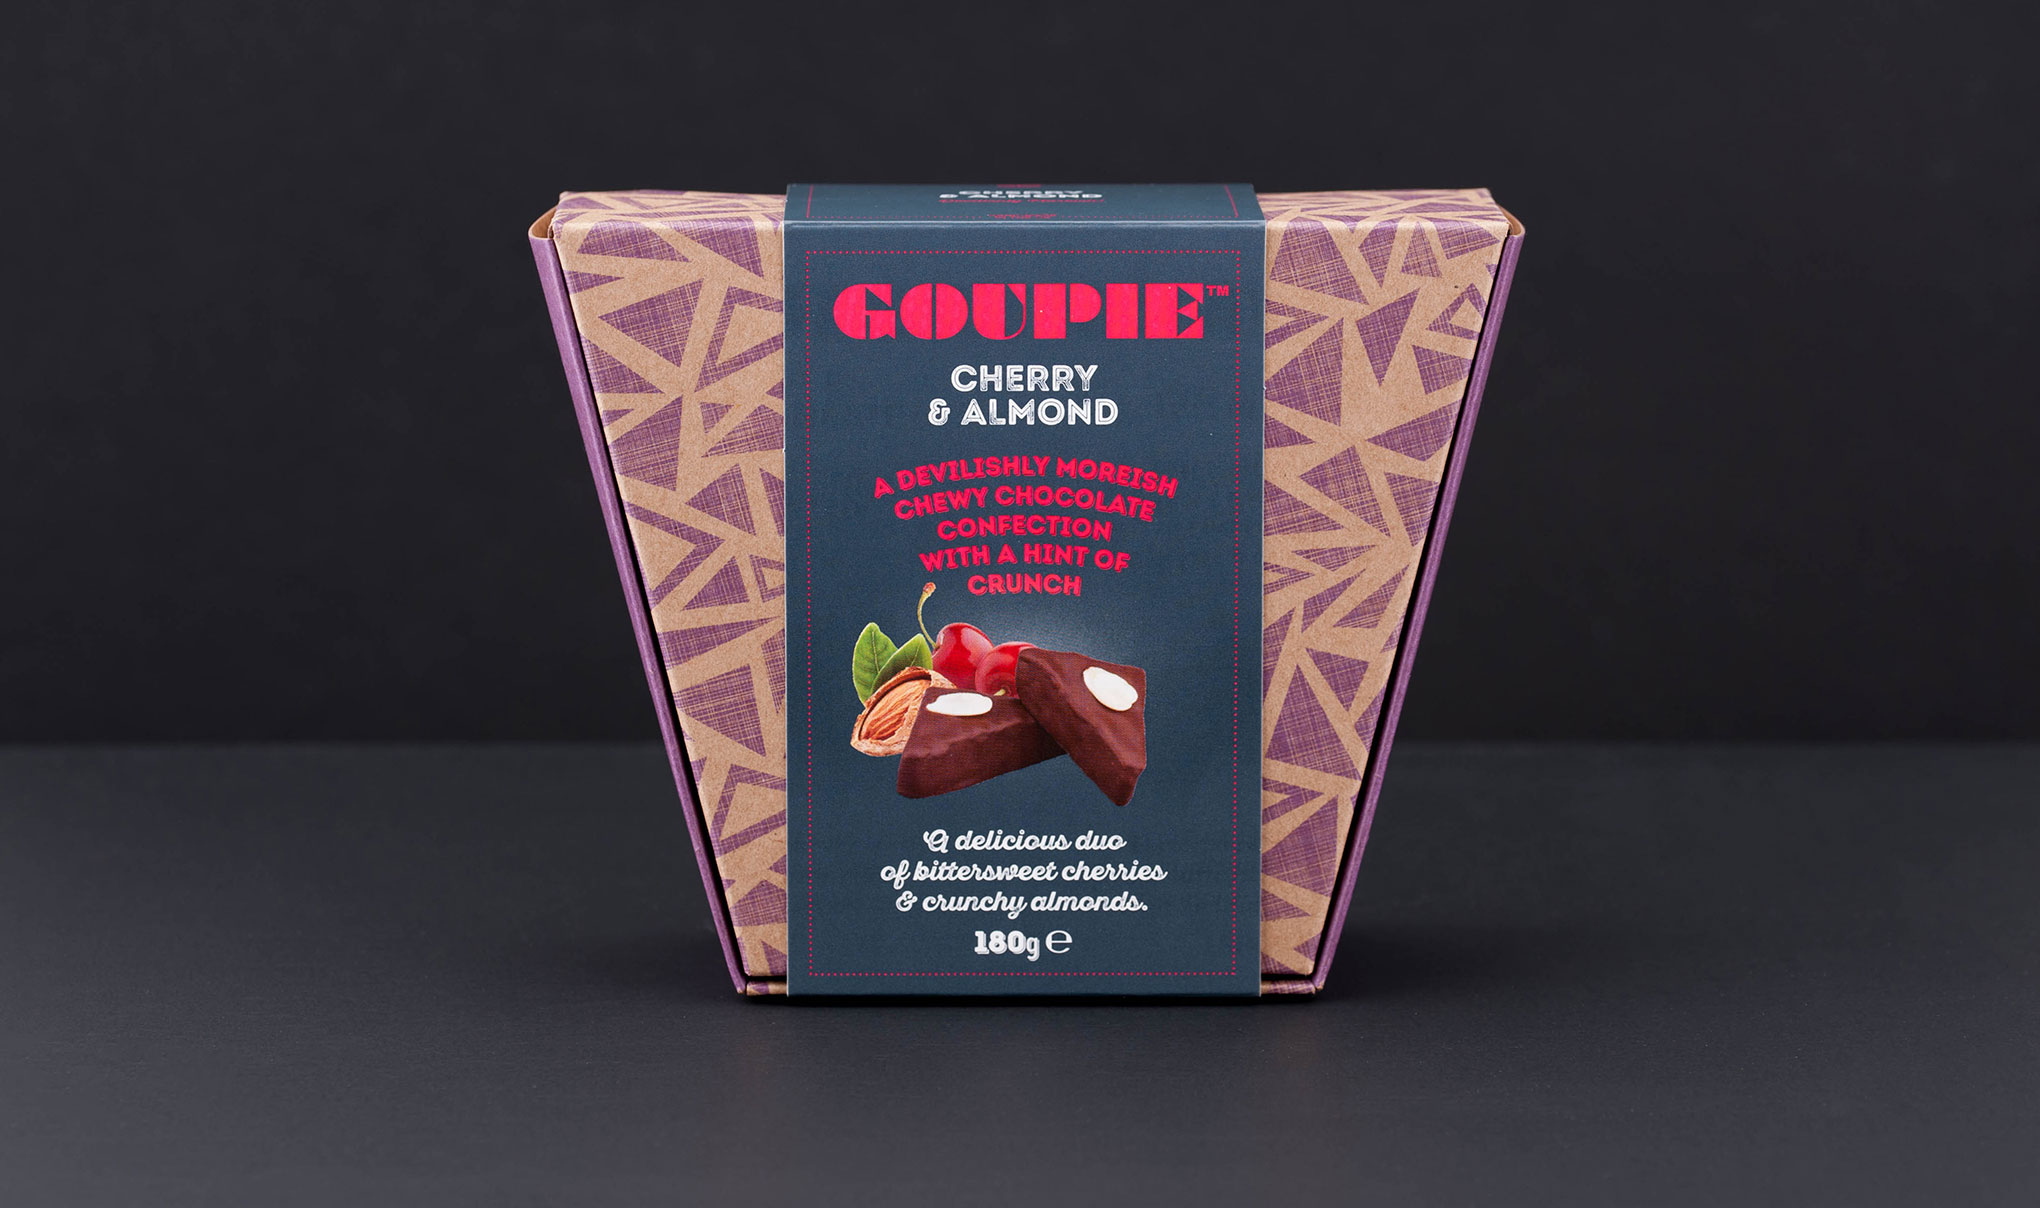 Goupie Chocolate package design. Trapezoid carton with band wrap. Food packaging design agency - Flipflop Design.